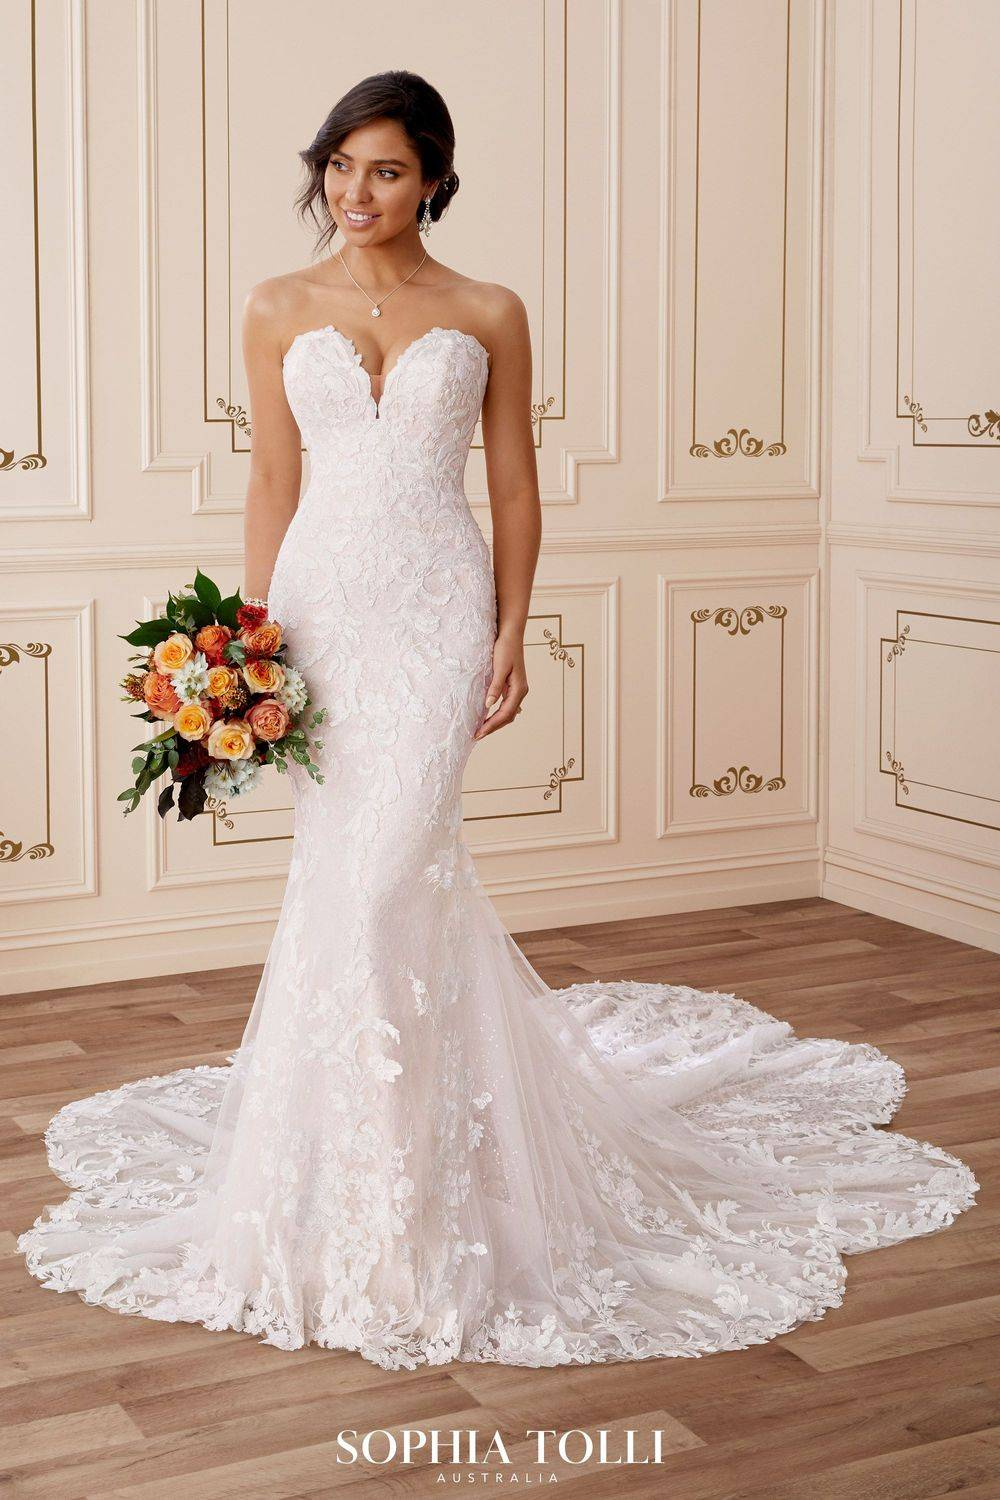 lace fitted wedding dress with sweetheart neckline and dramatic train